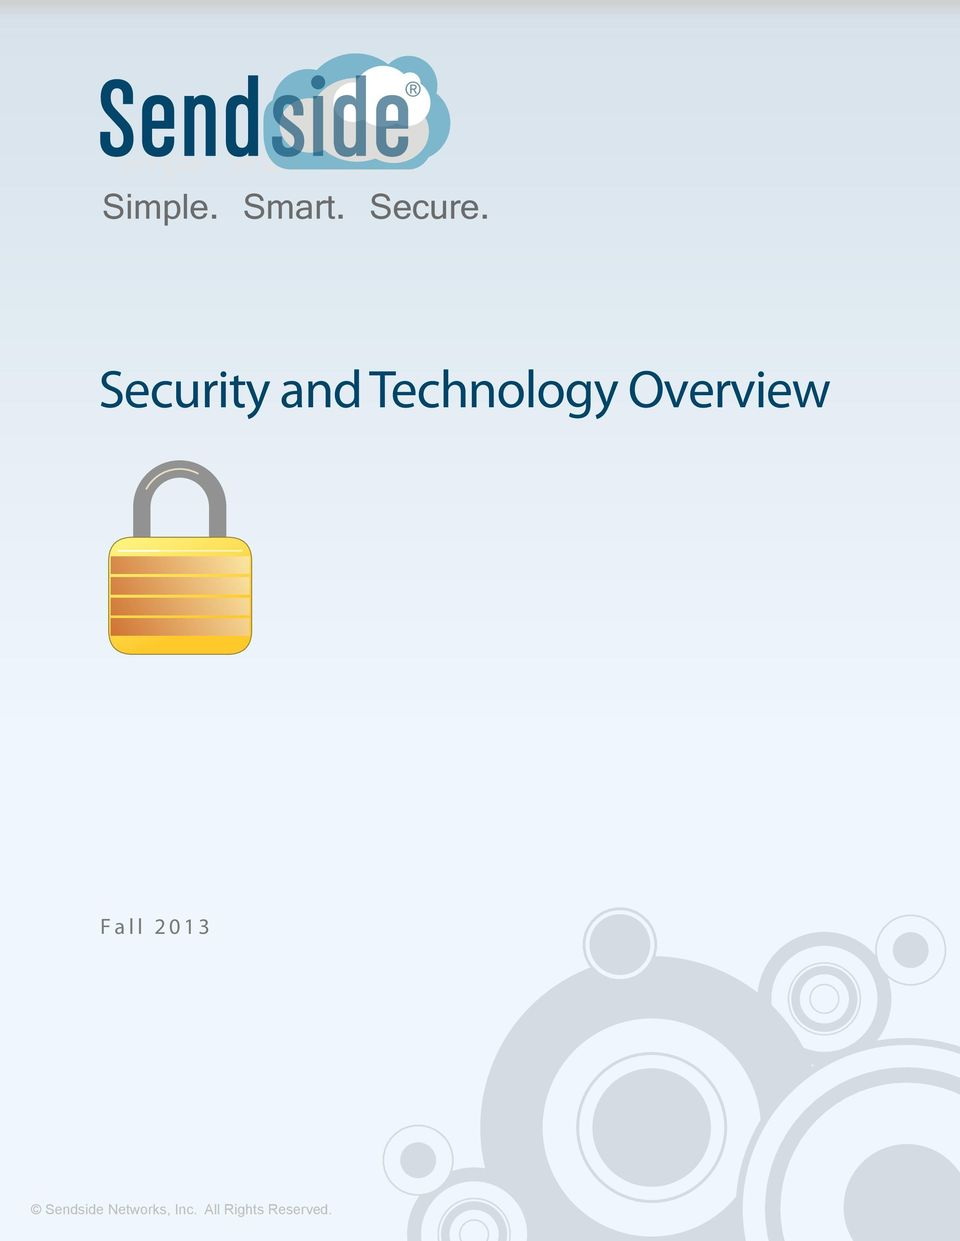 Security and Technology Overview